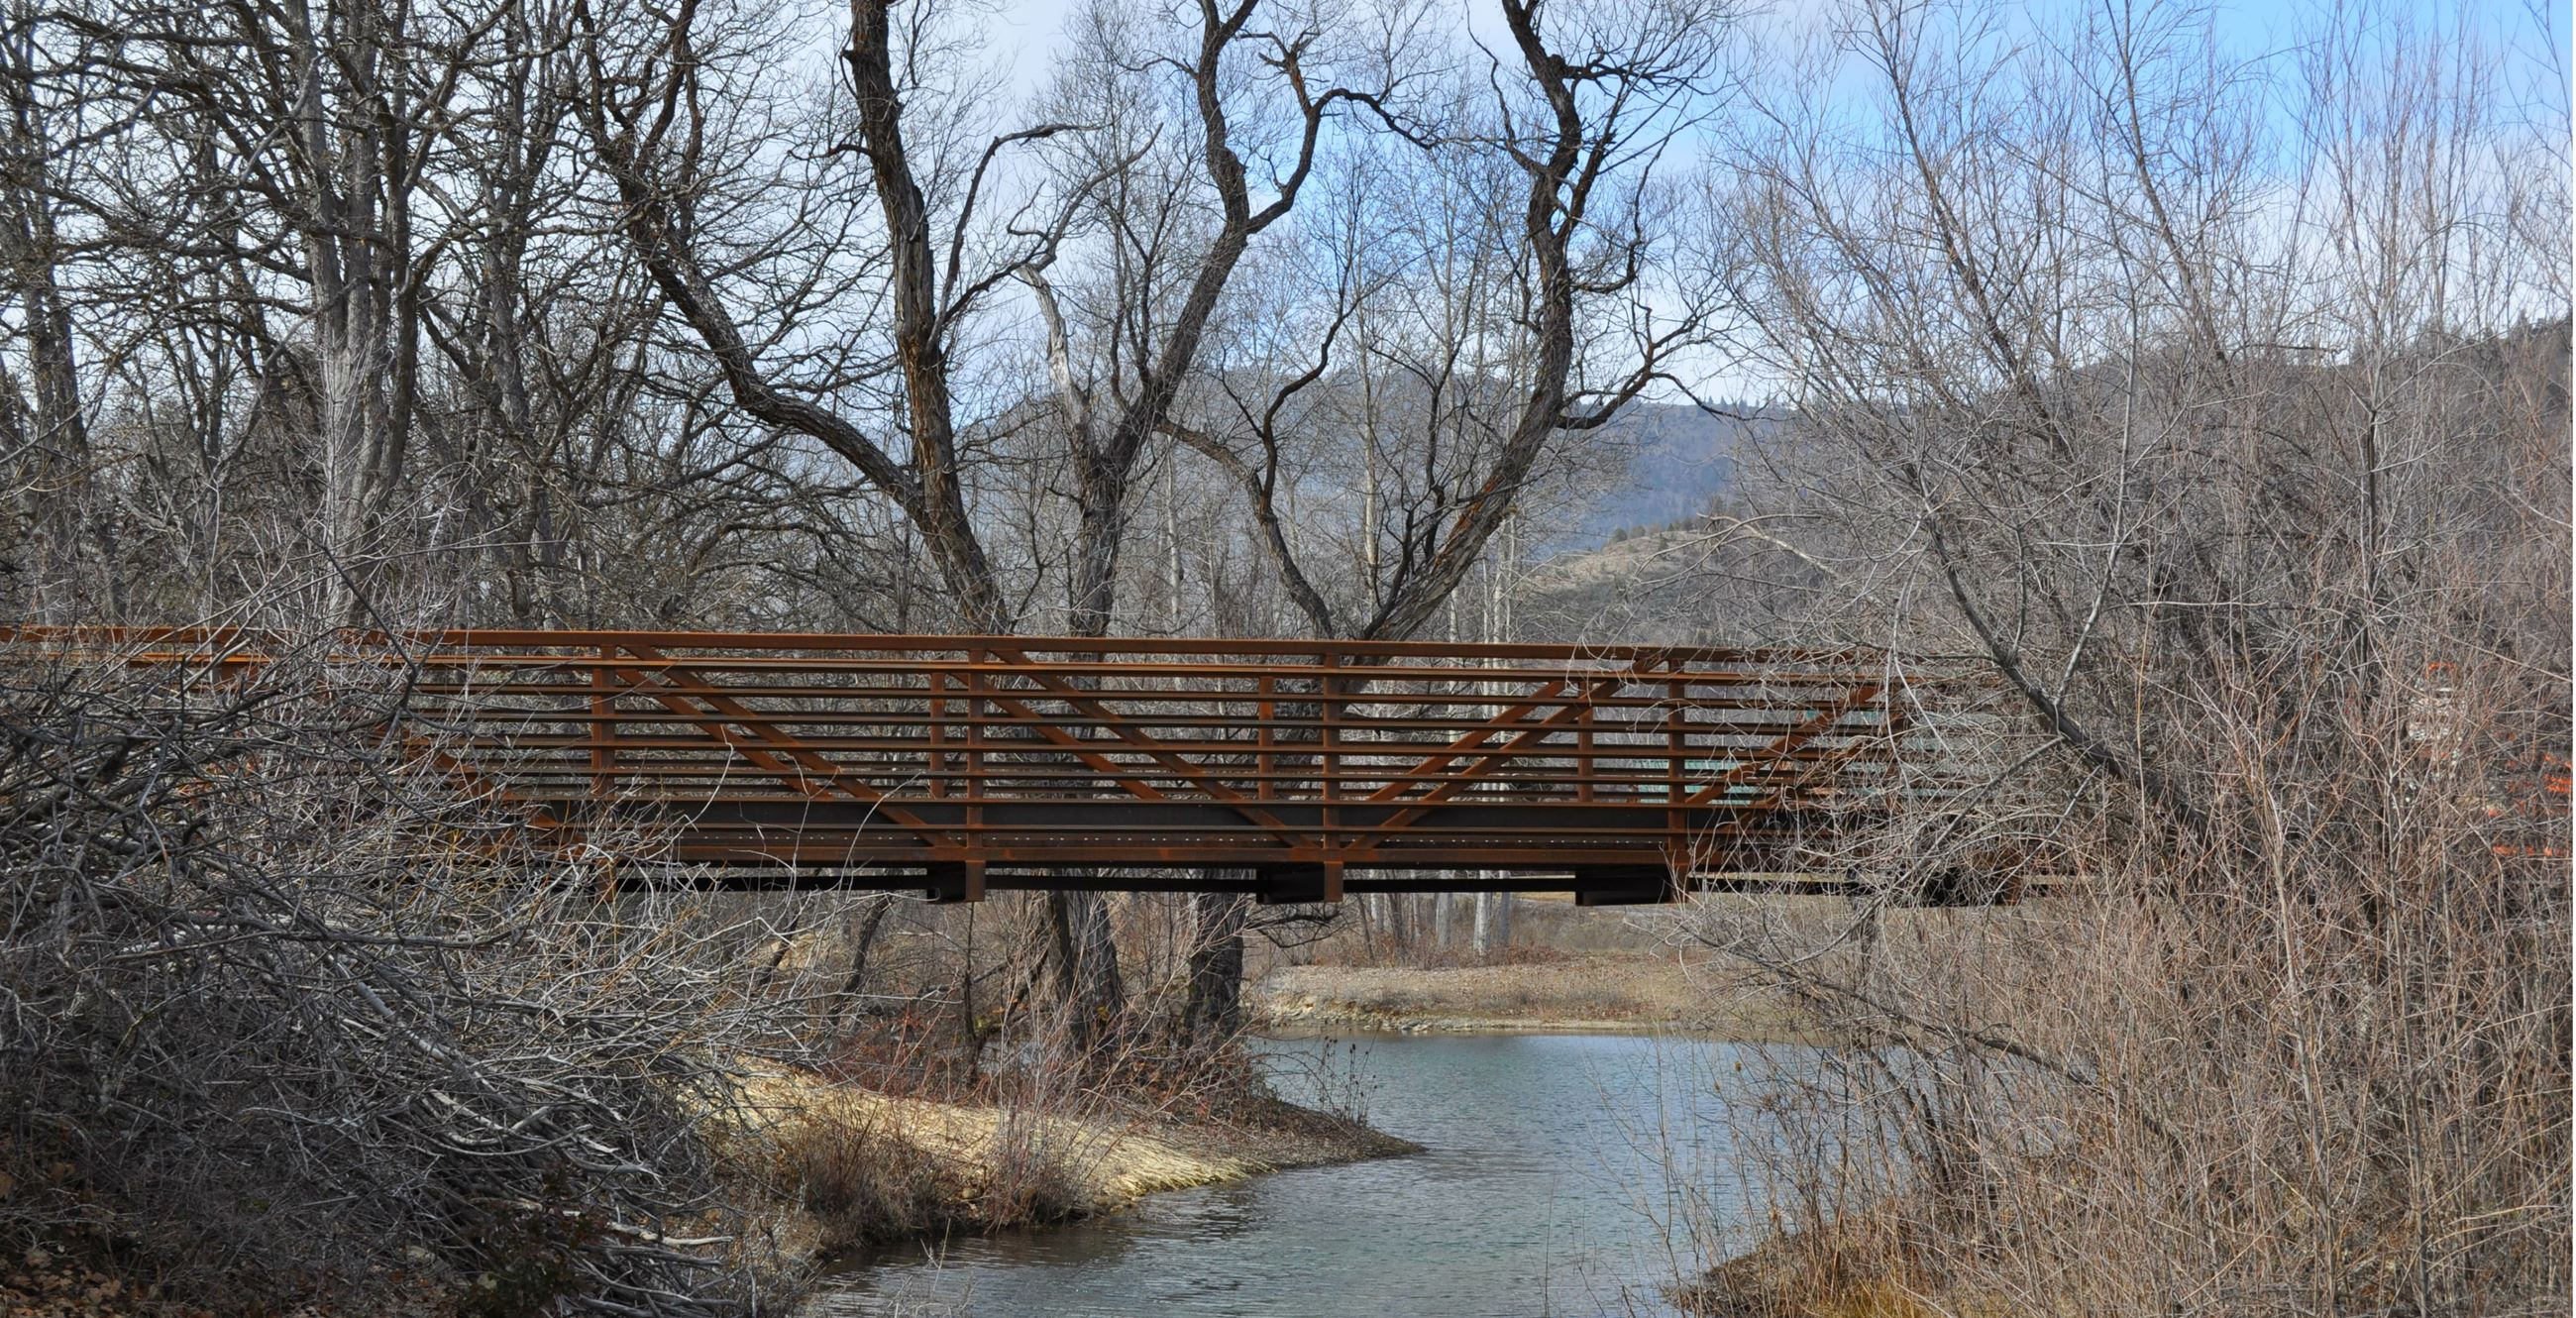 Greenhorn Creek Floodplain Restoration and Trails Project Bridge